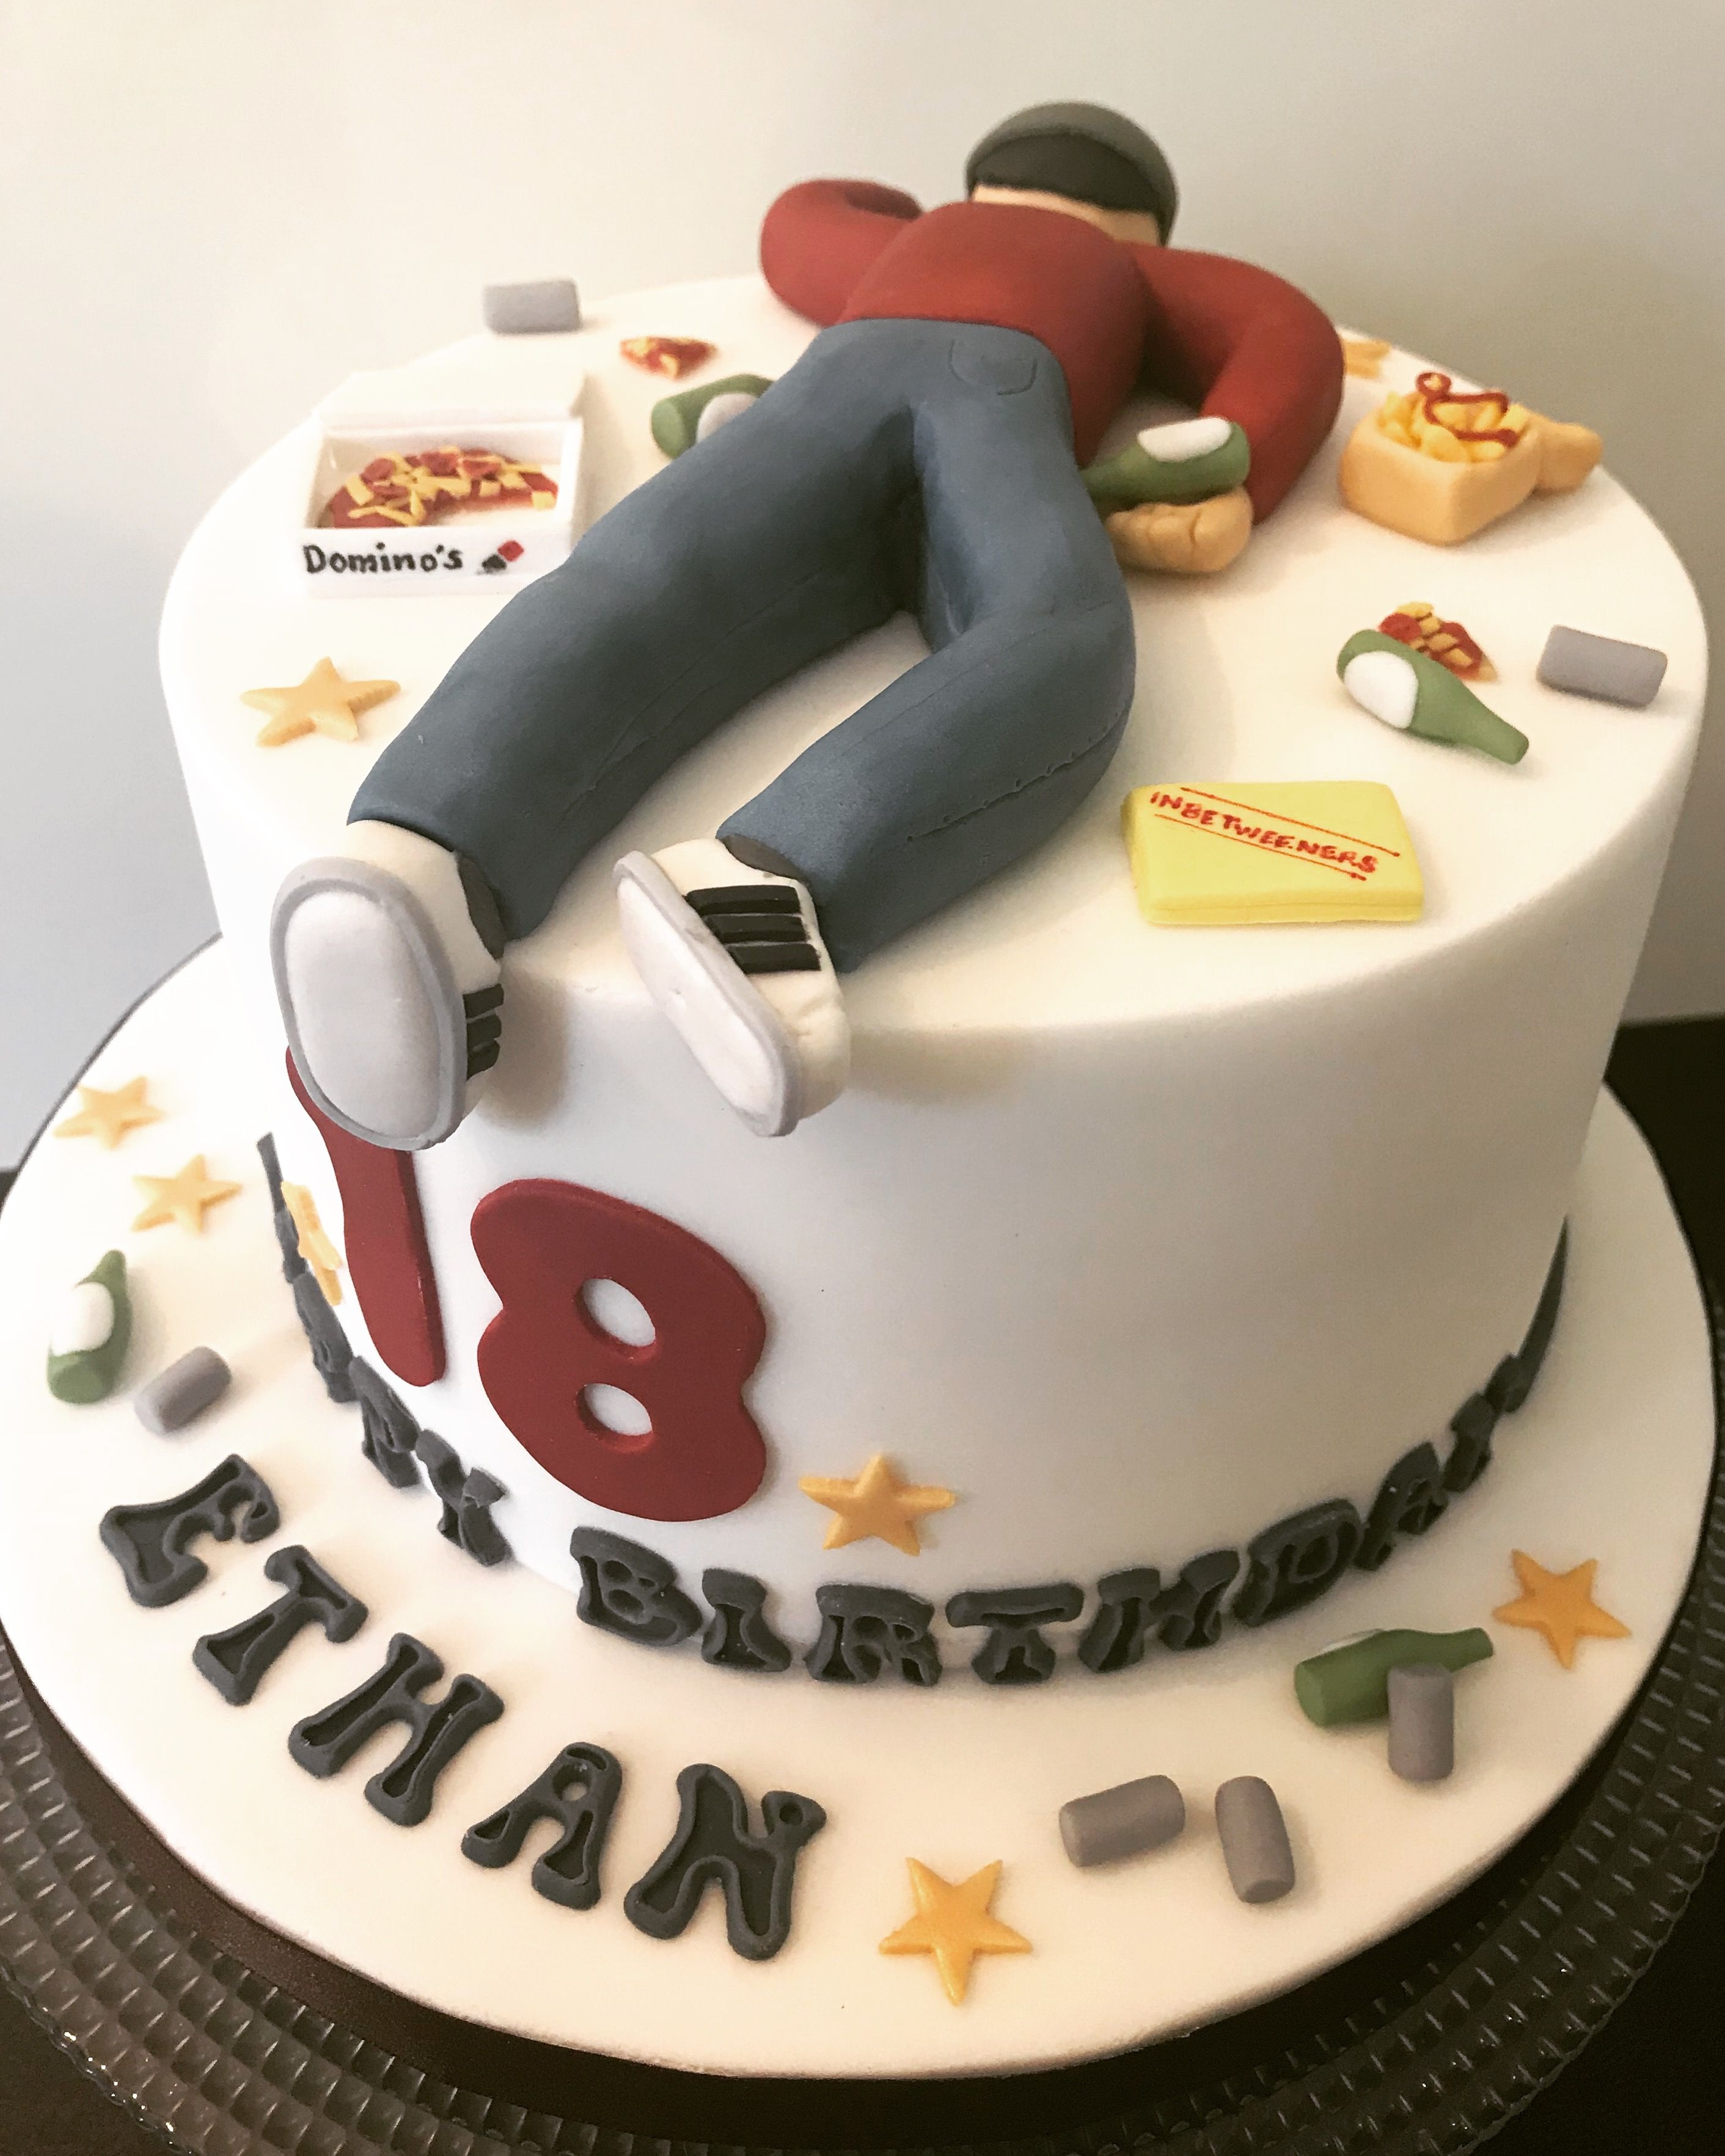 18th Birthday Cake Ideas For Guys : birthday, ideas, Birthday, #nightout, #18thbirthday, Guys,, Cake,, Boyfriend